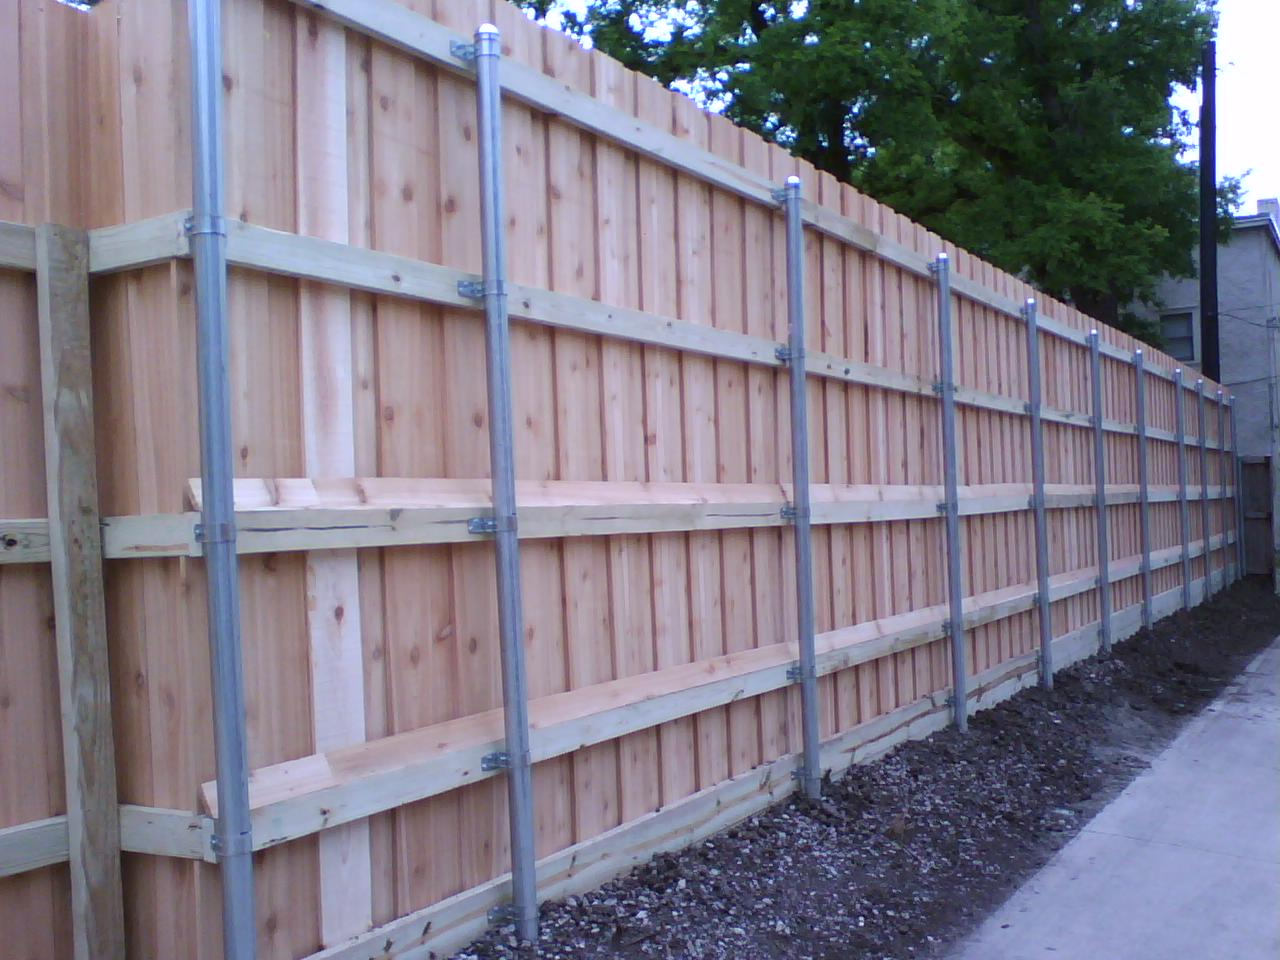 38 8 Foot Board On Board Fence With Metal Posts Fences